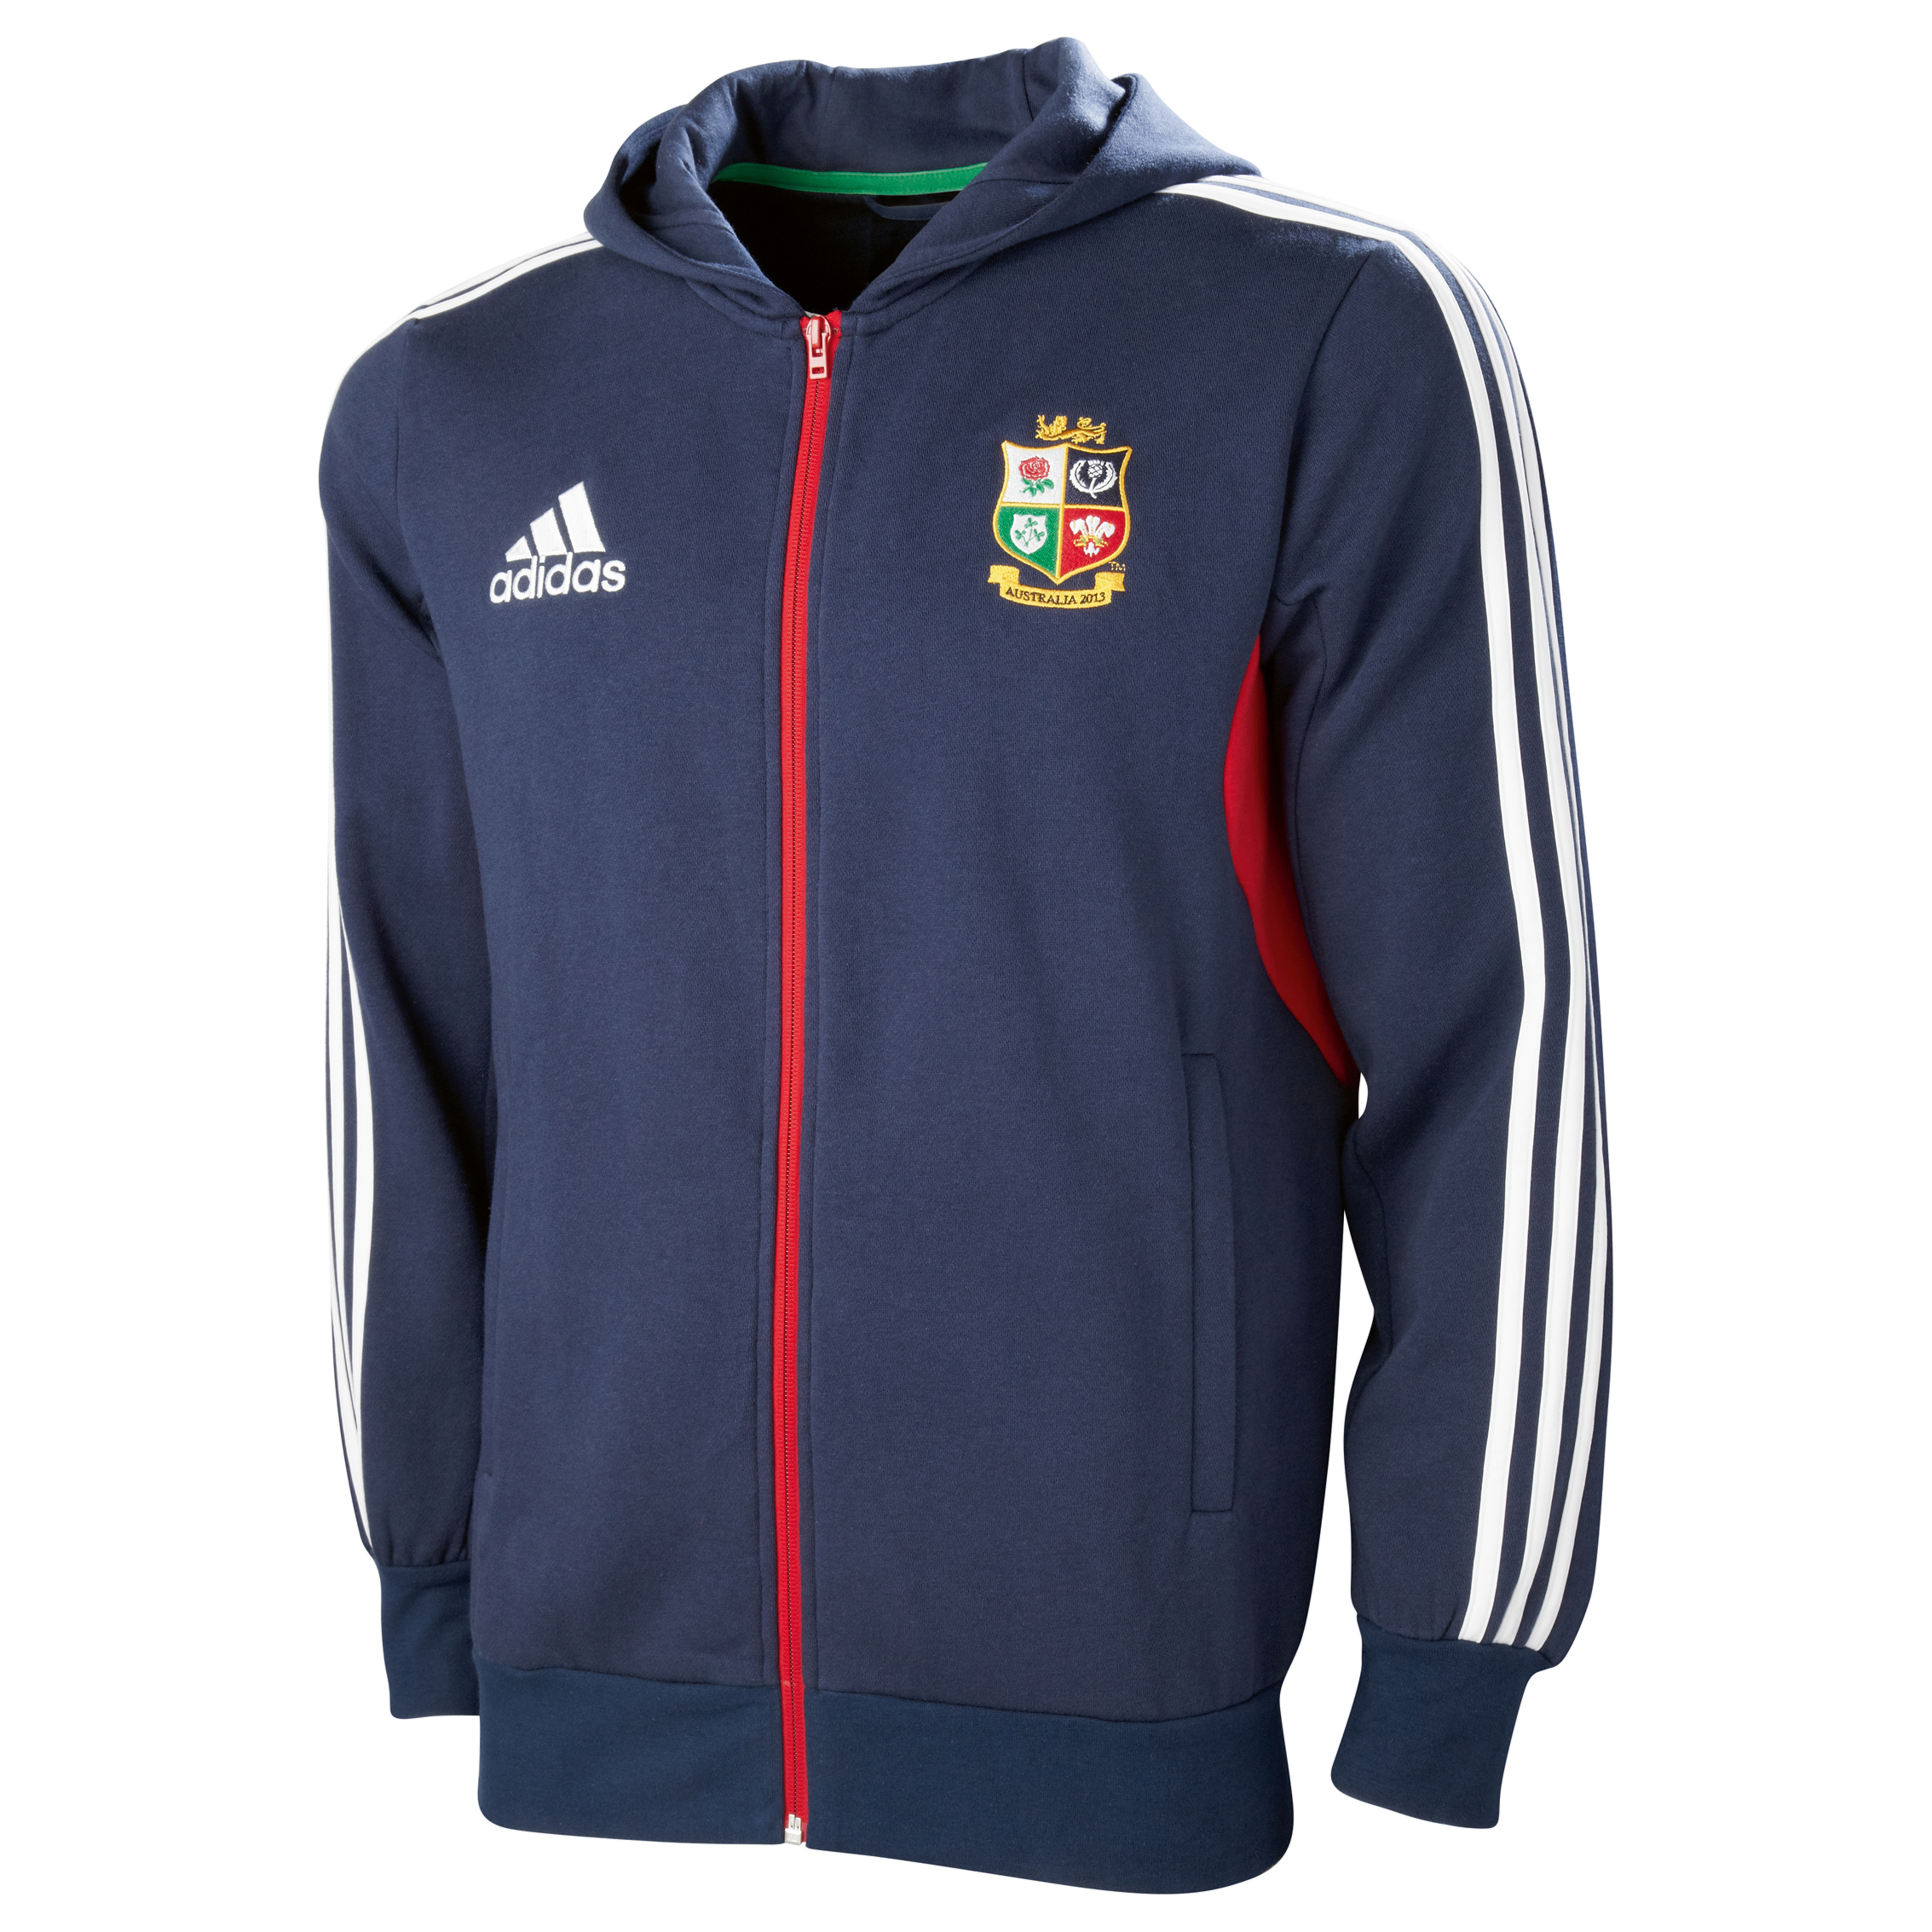 British & Irish Lions Hooded Sweatshirt - Collegiate Navy/White